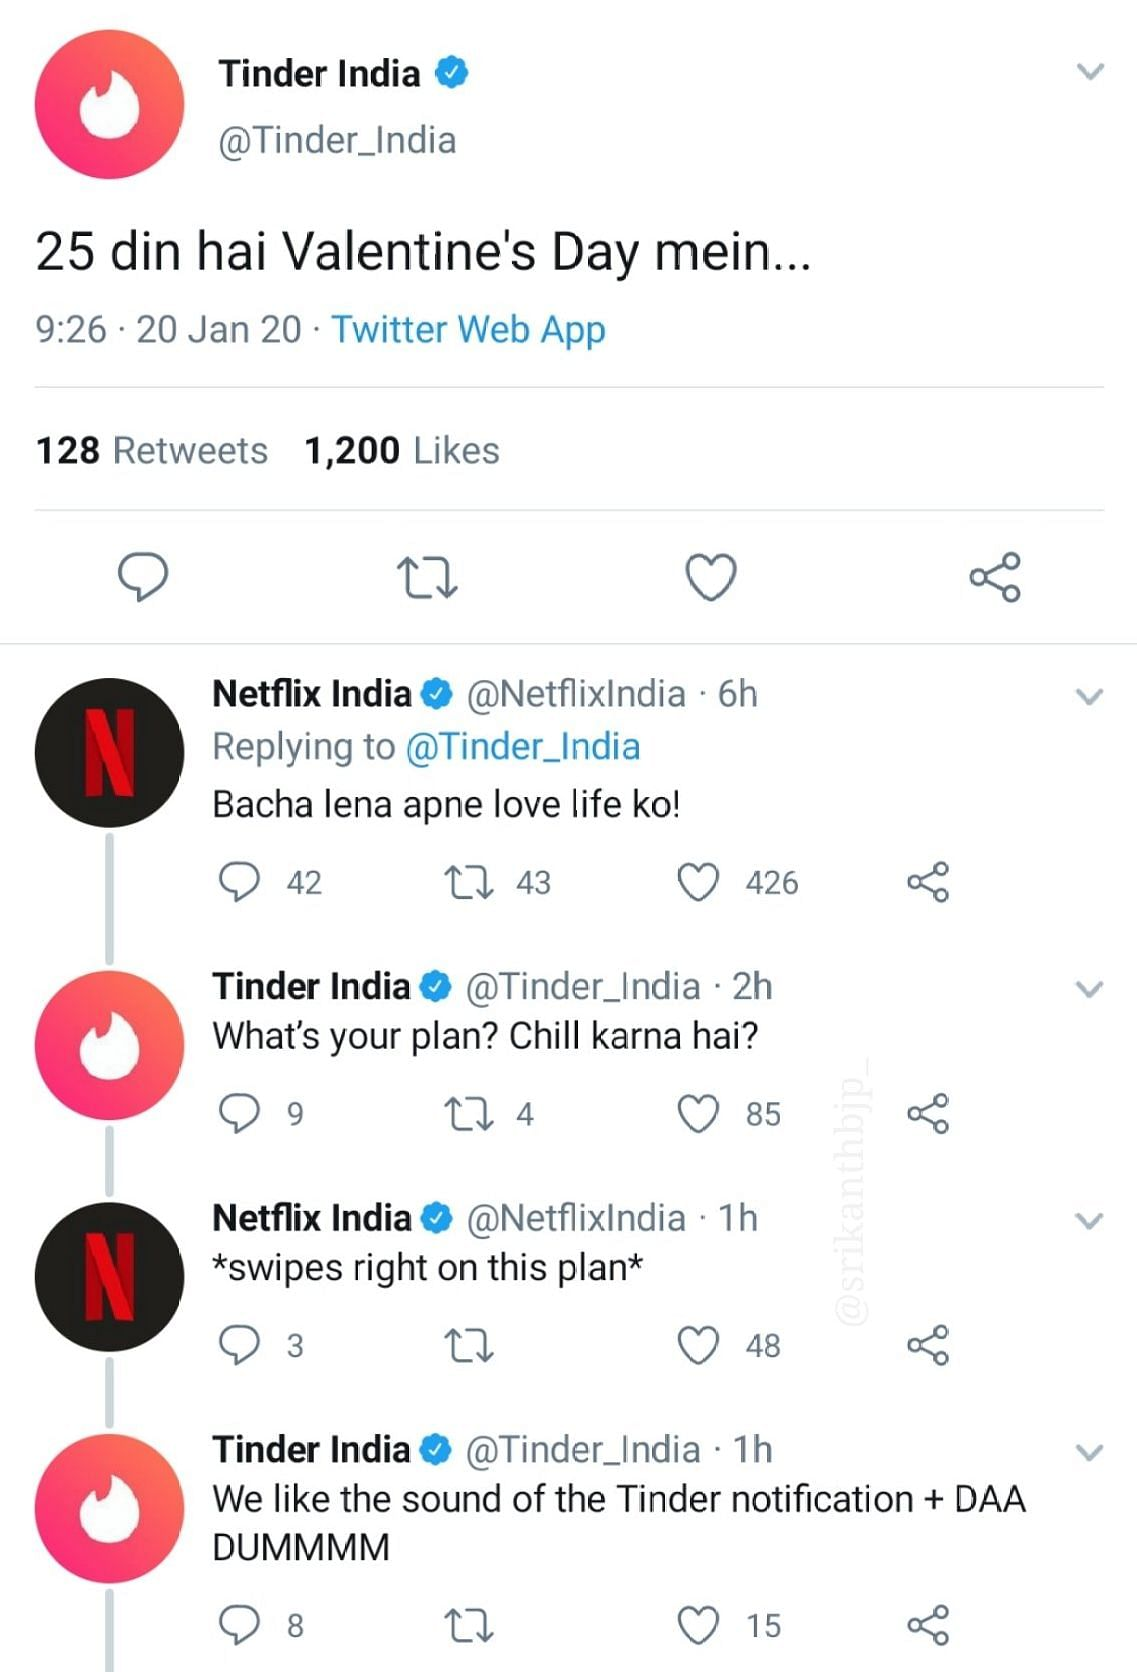 Tinder and Netflix get the ball rolling in a Twitter exchange...